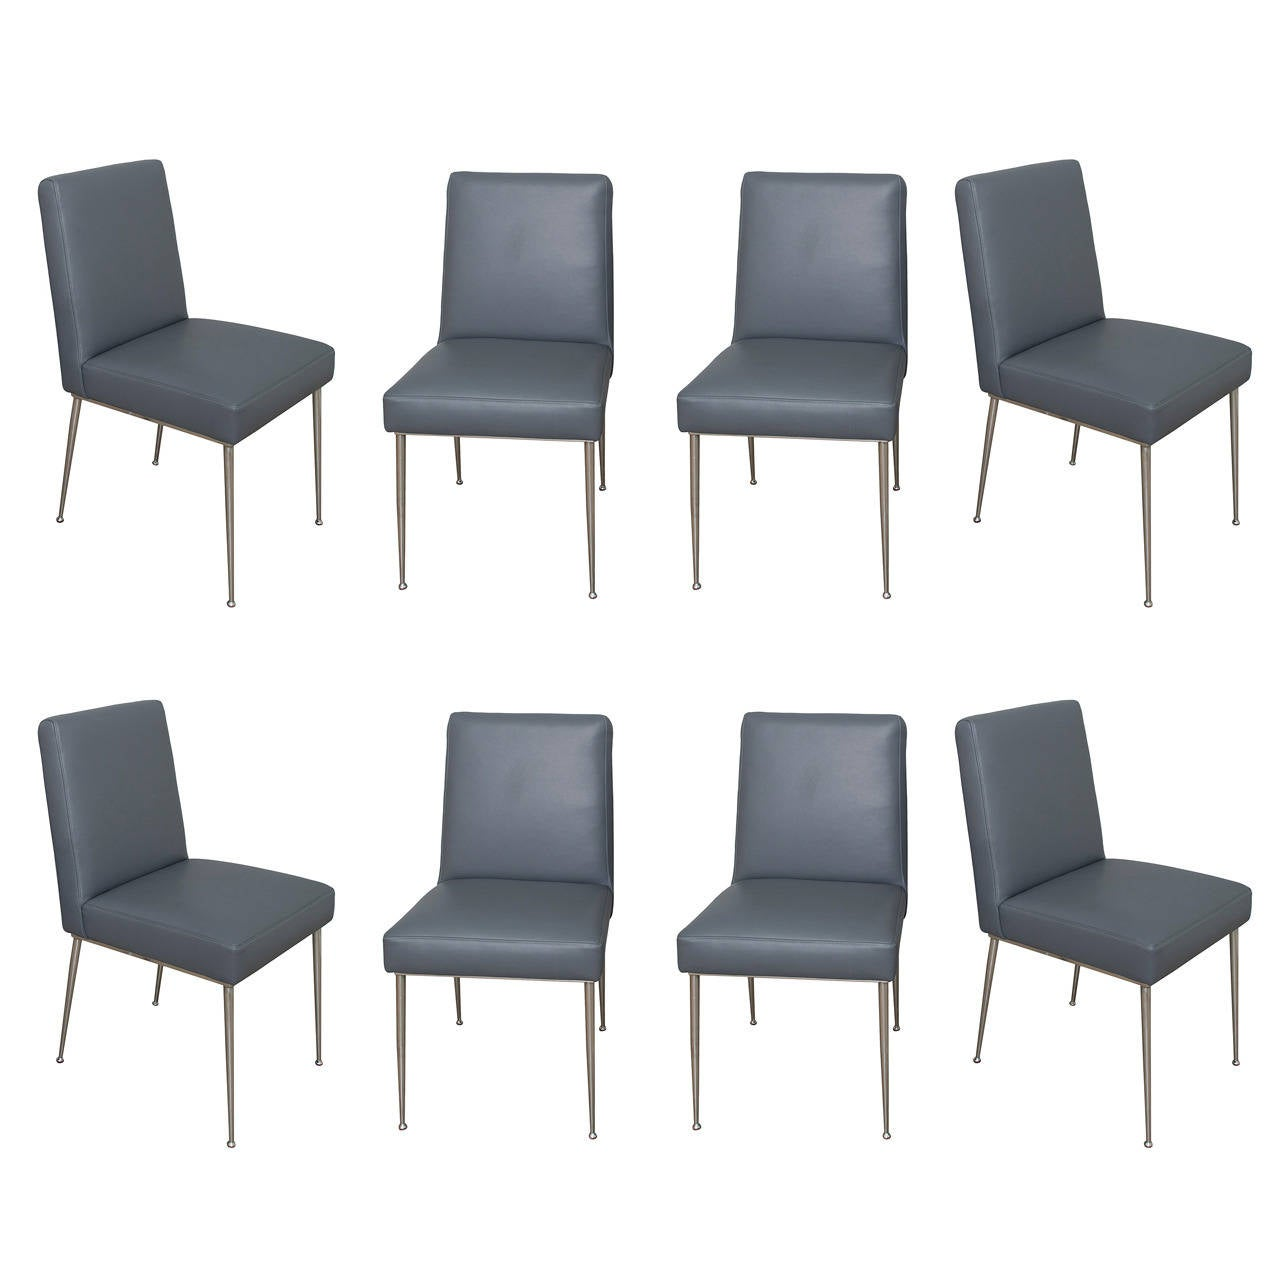 Mid century modern leather chairs - Set Of 8 Mid Century Italian Chrome And Leather Dining Chairs 1